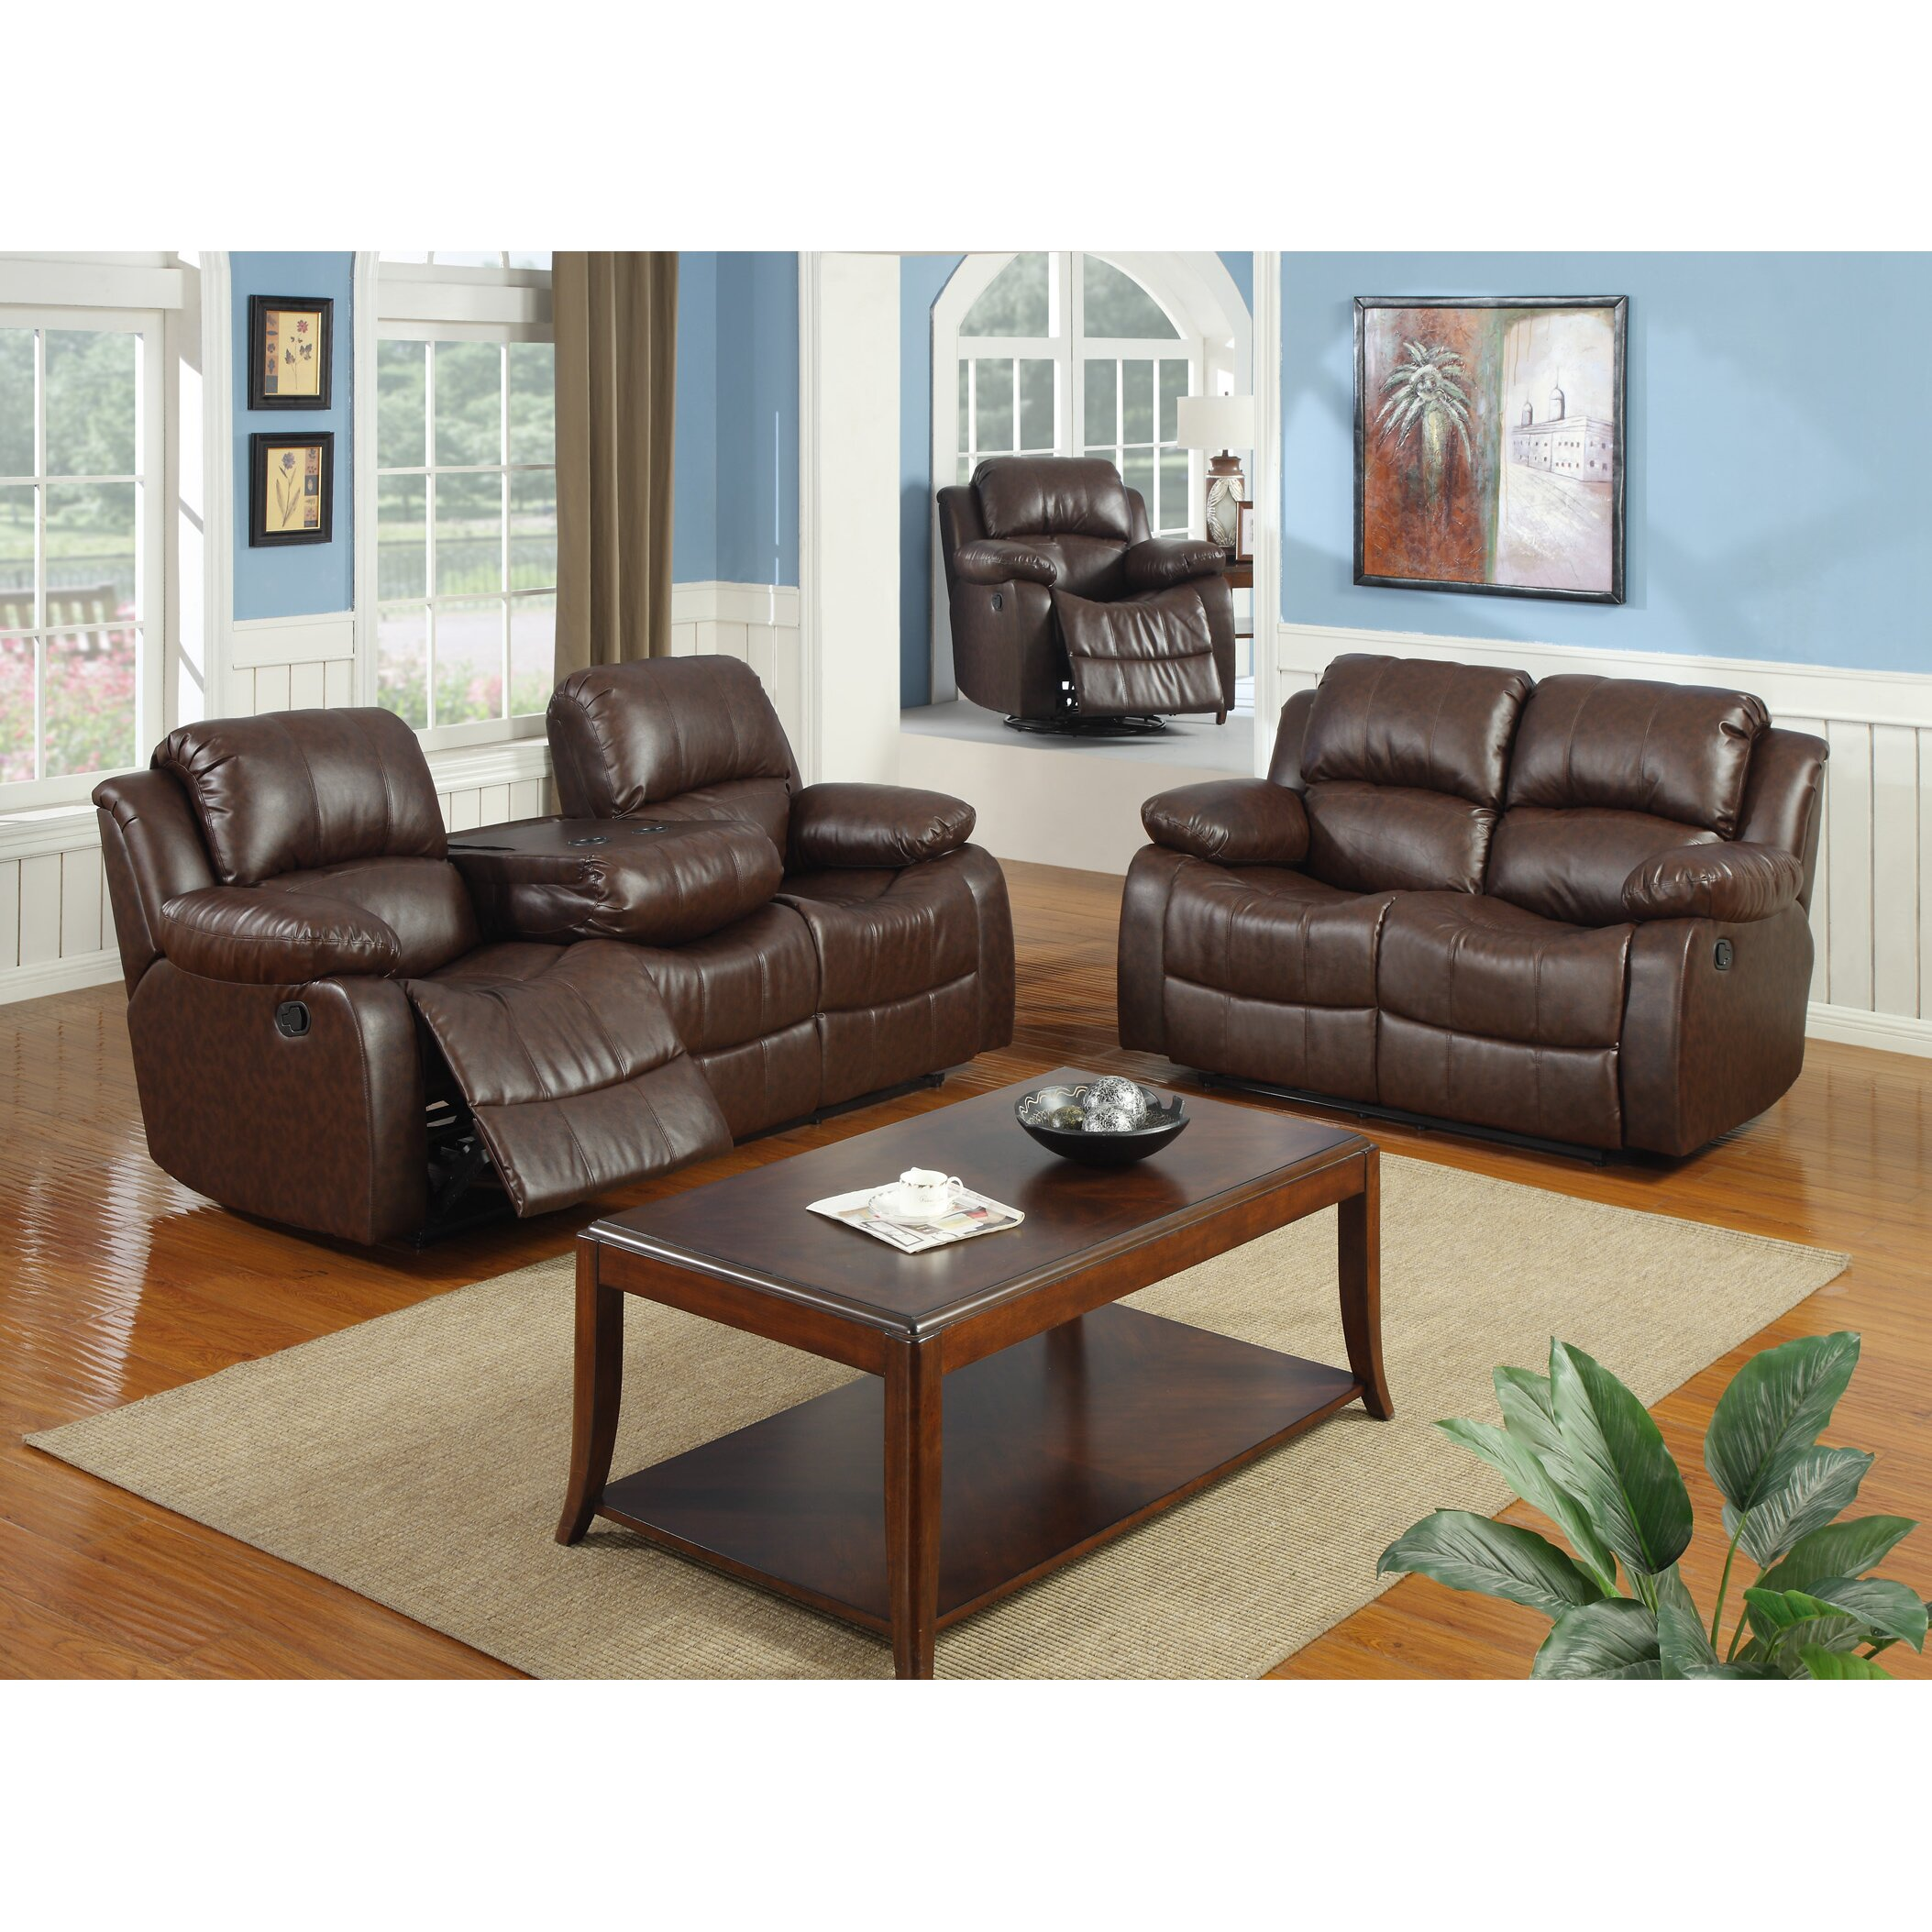 Best quality furniture bonded leather recliner sofa wayfair - Best furniture ...